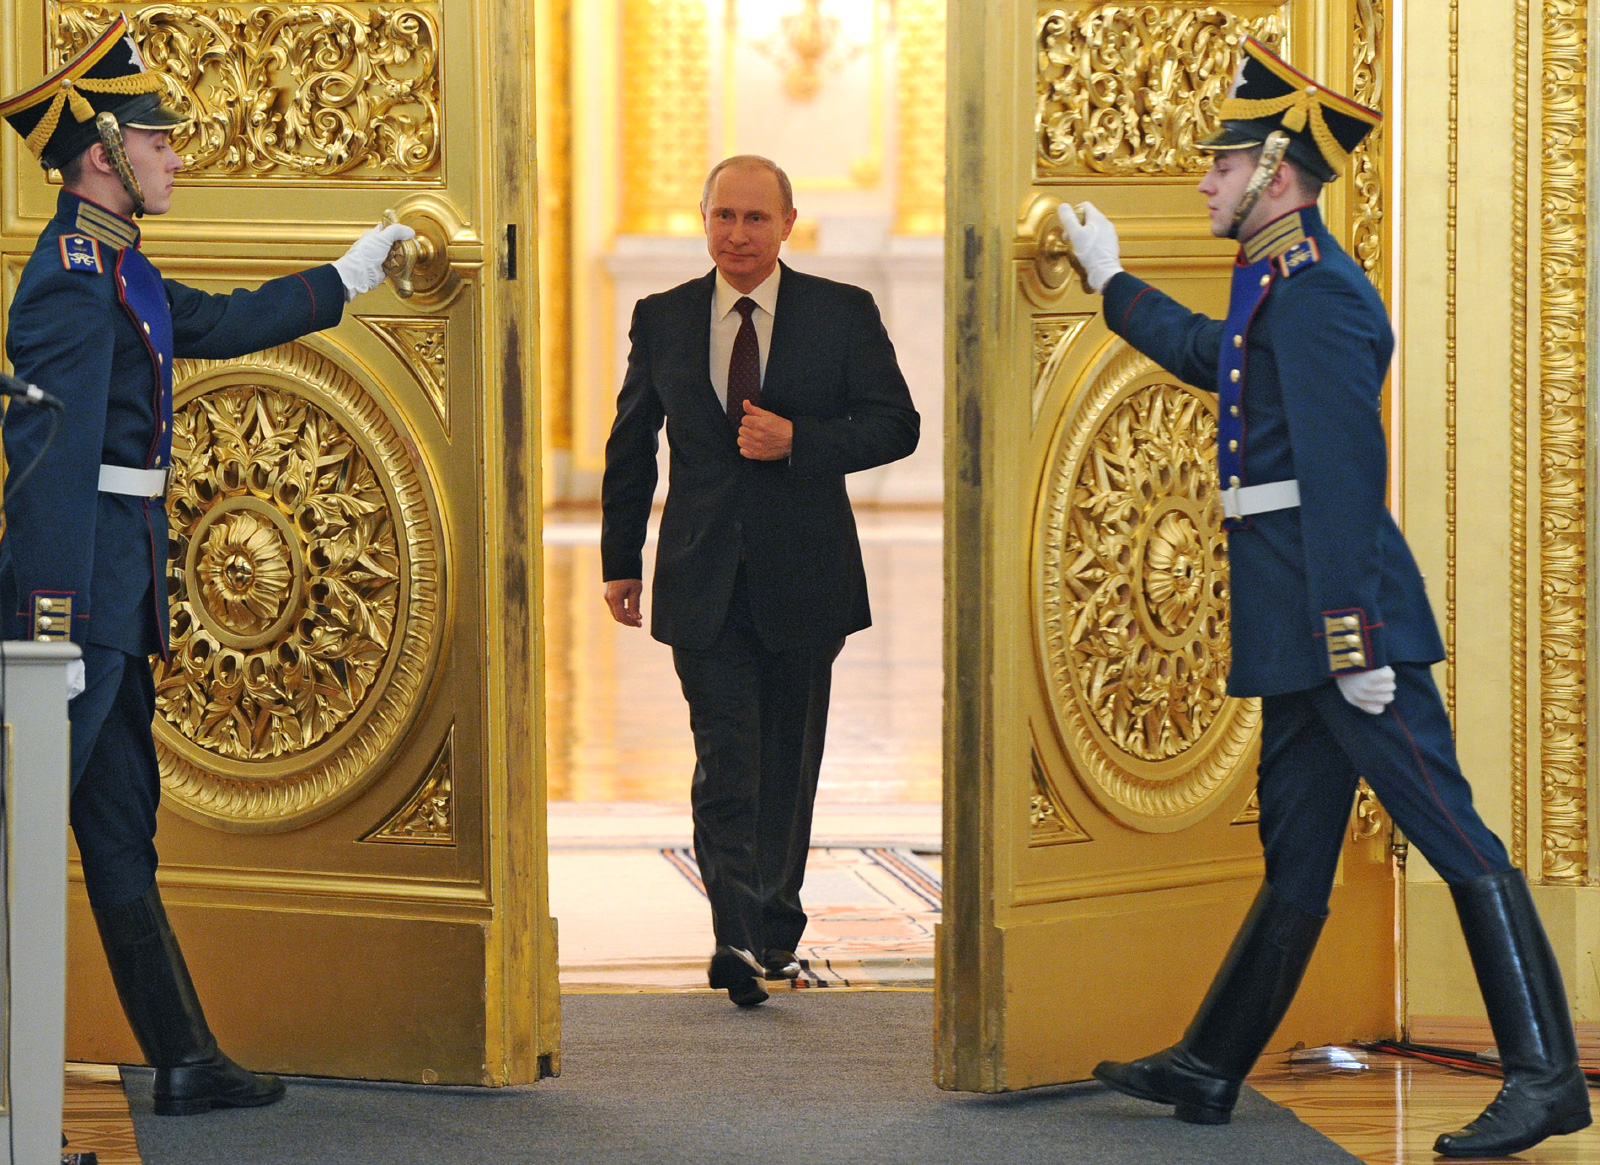 Vladimir Putin enters the St. George Hall at the Grand Kremlin Palace at the Kremlin in Moscow